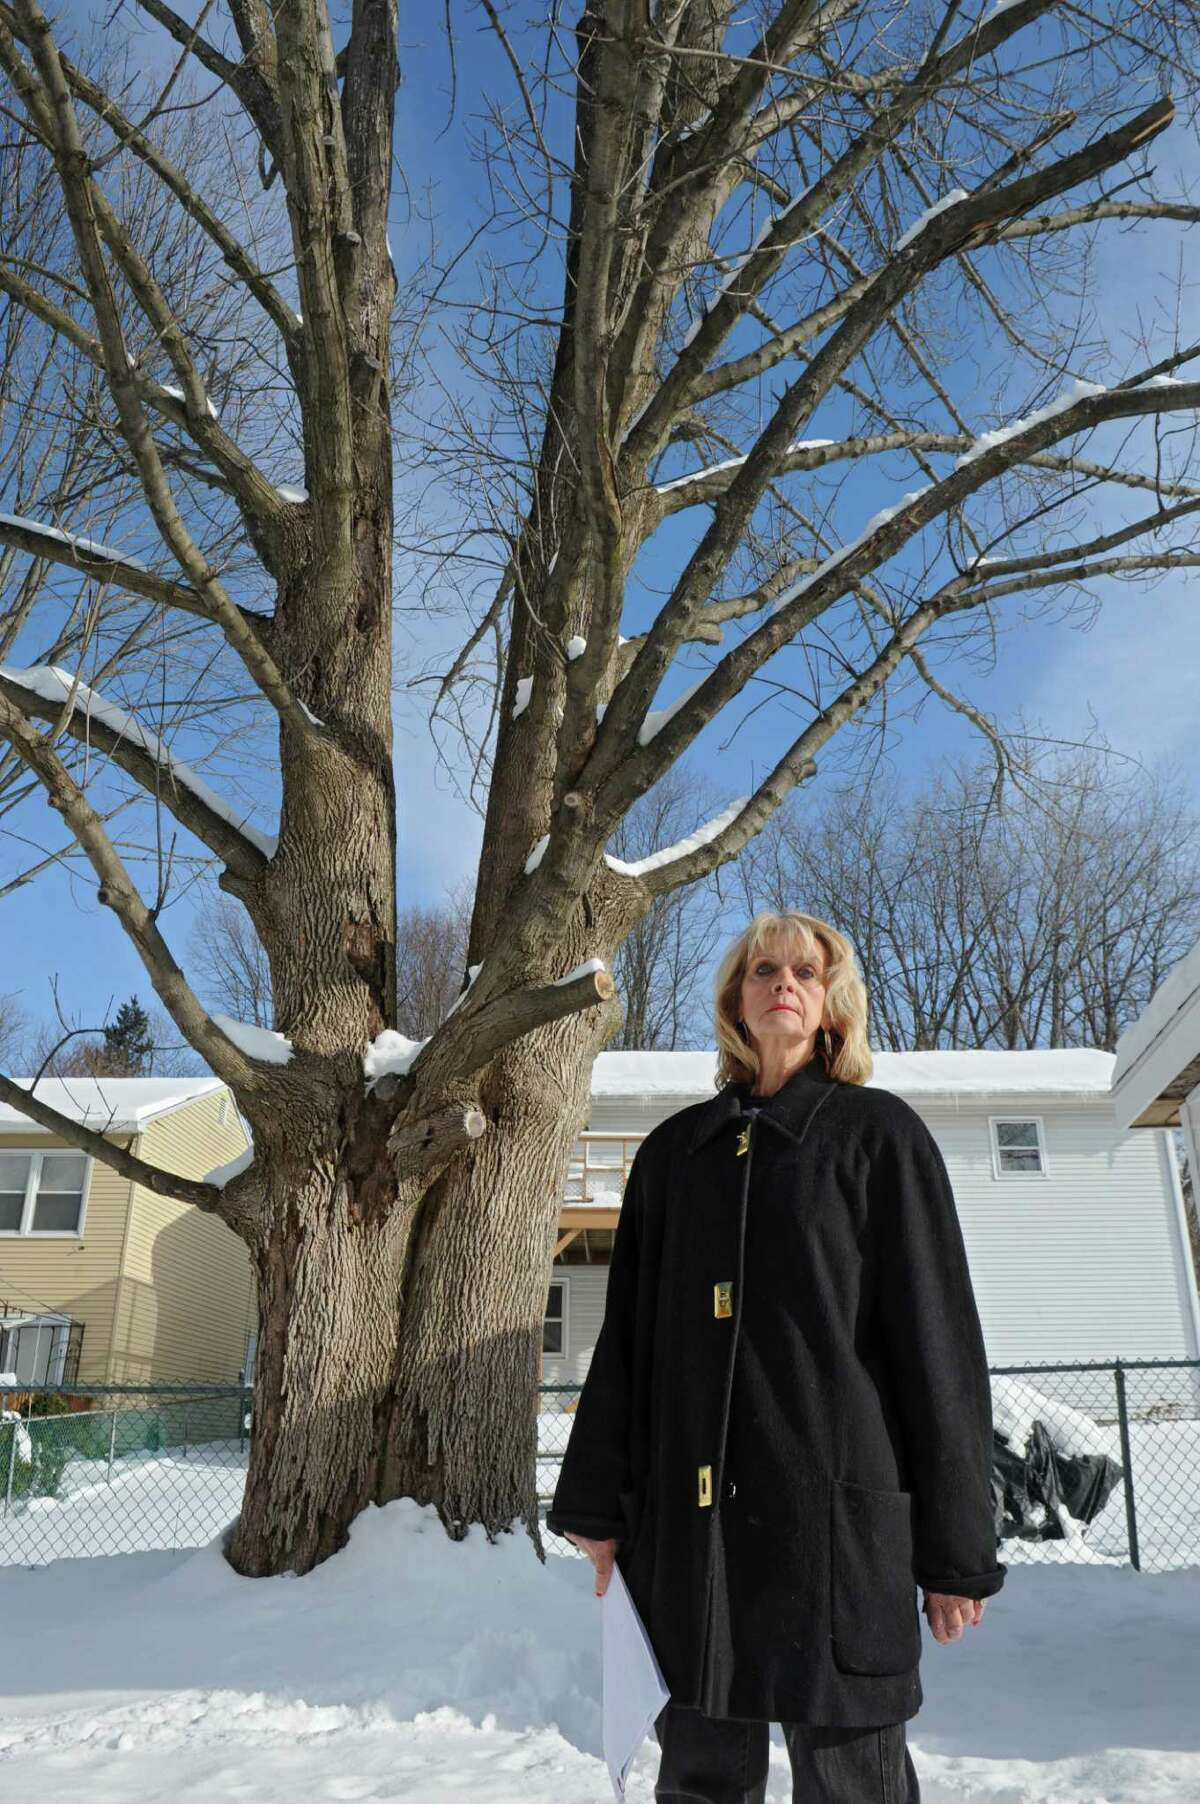 Mary Jo Occhialino stands in front of her backyard tree that she says is perfectly healthy, yet the city wants her to take it down Thursday, Feb. 5, 2015 in Albany, N.Y. (Lori Van Buren / Times Union)